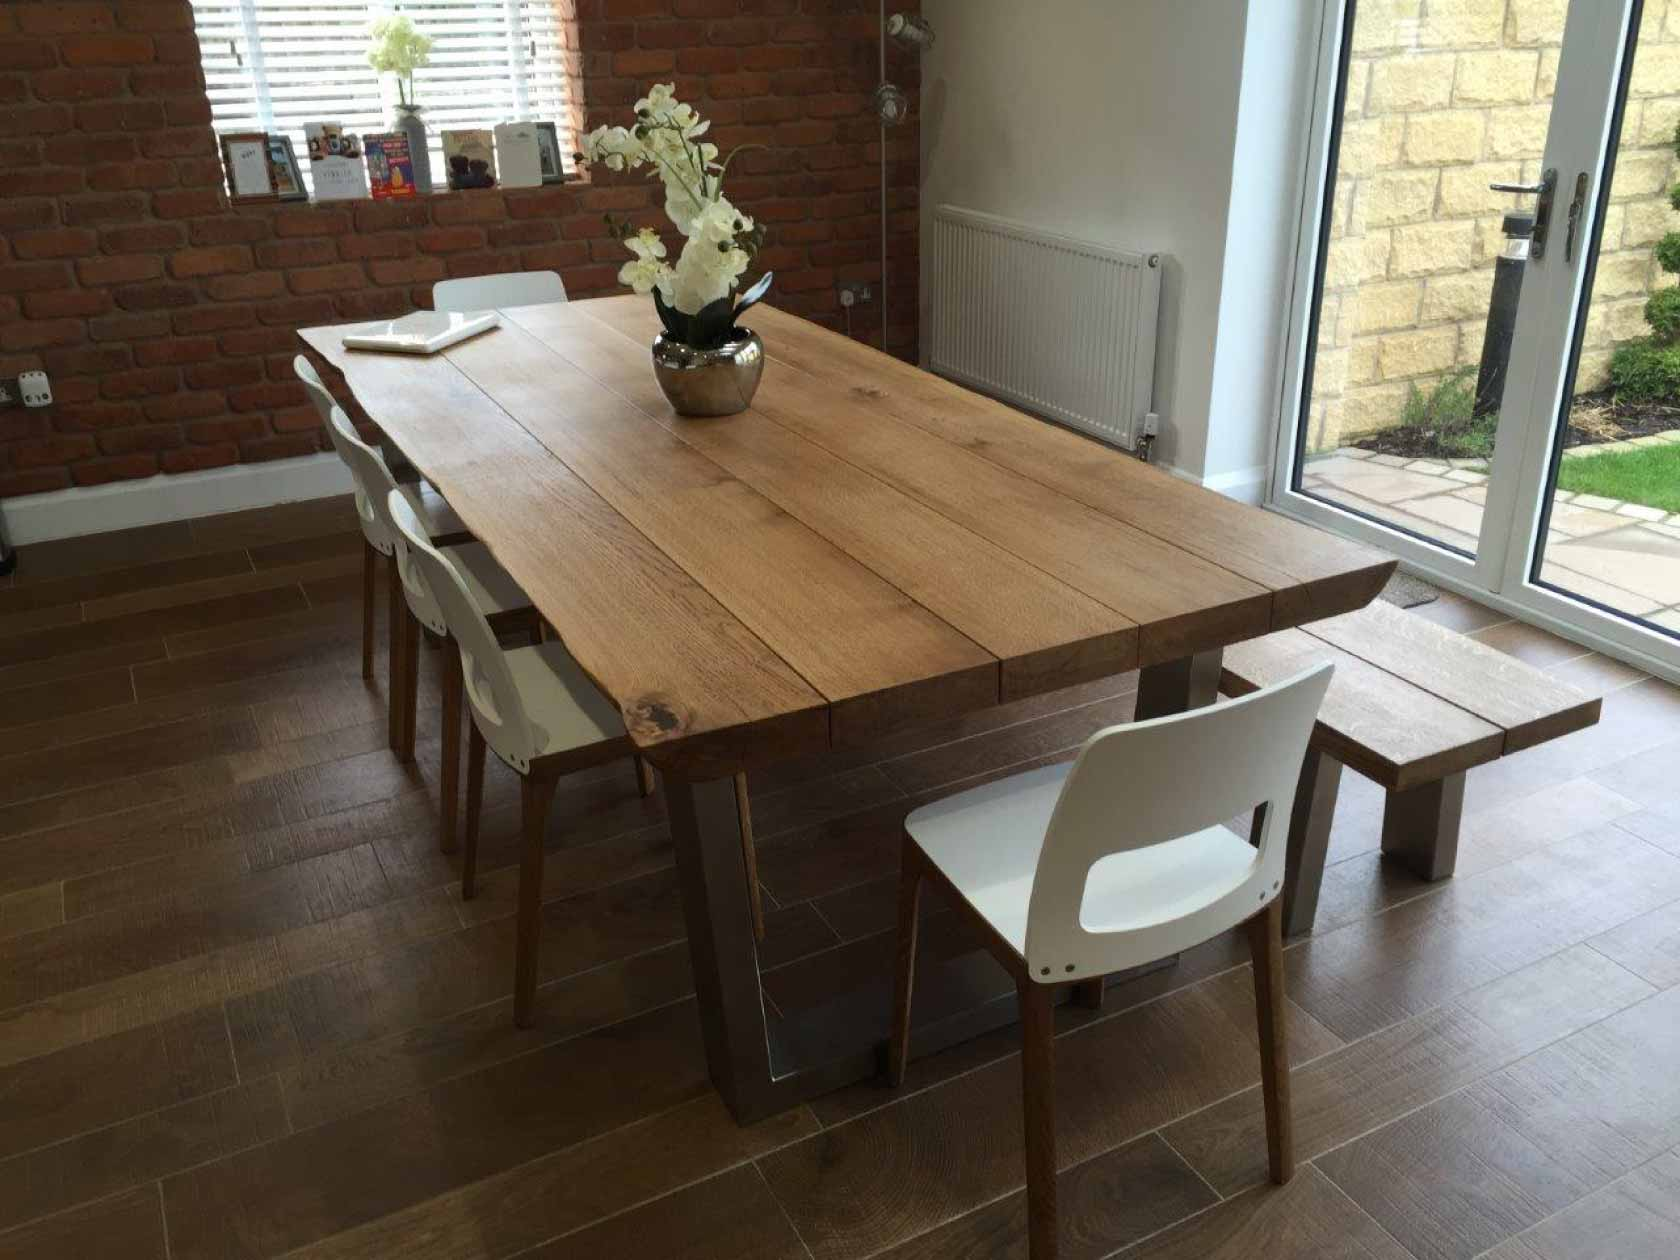 rustic-oak-dining-table-from-abacus-tables-full-dining-set-project-341